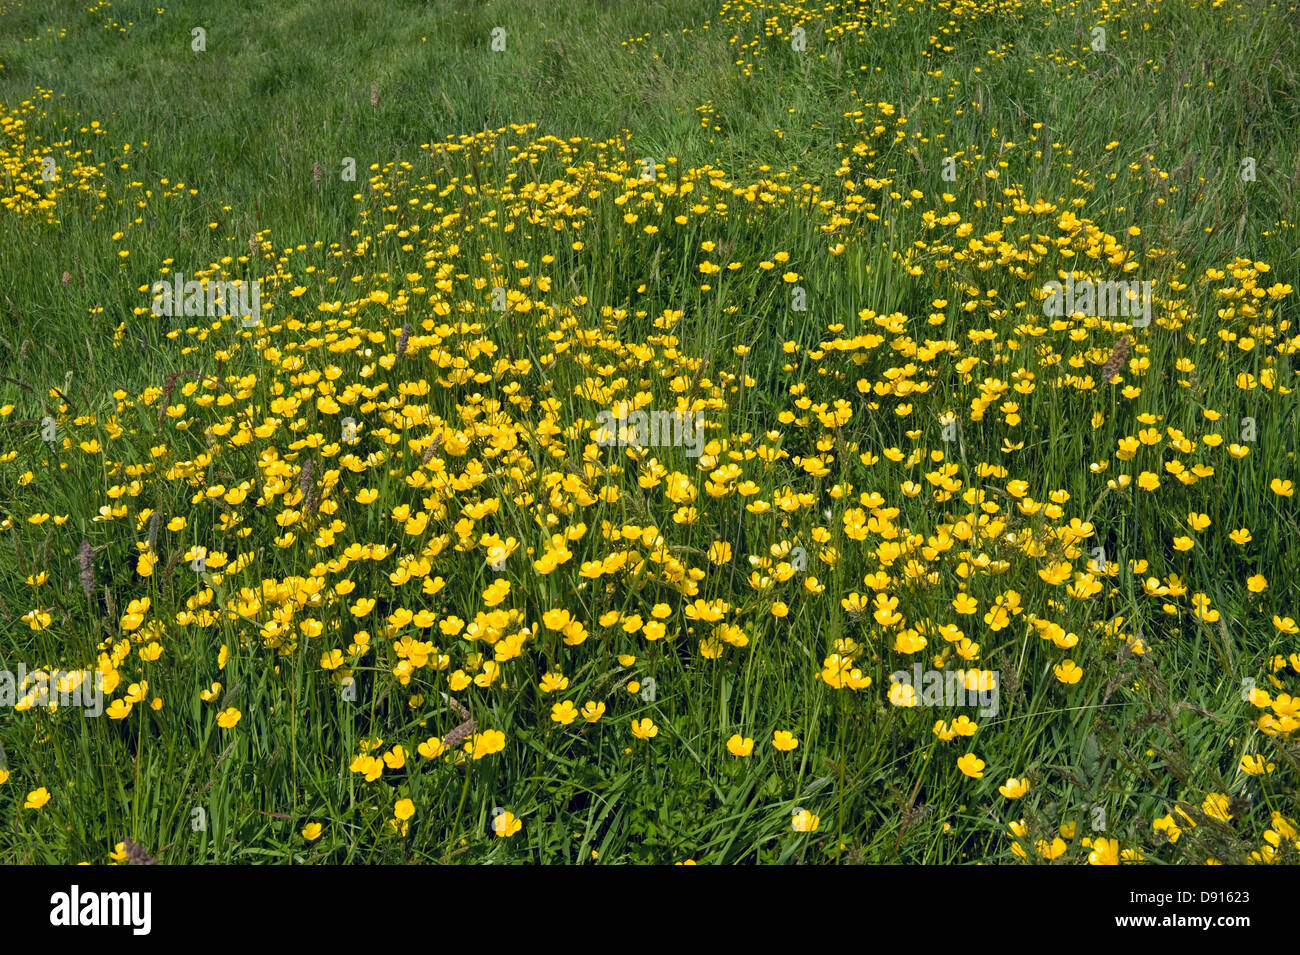 A Devon meadow with yellow buttercups in early summer - Stock Image